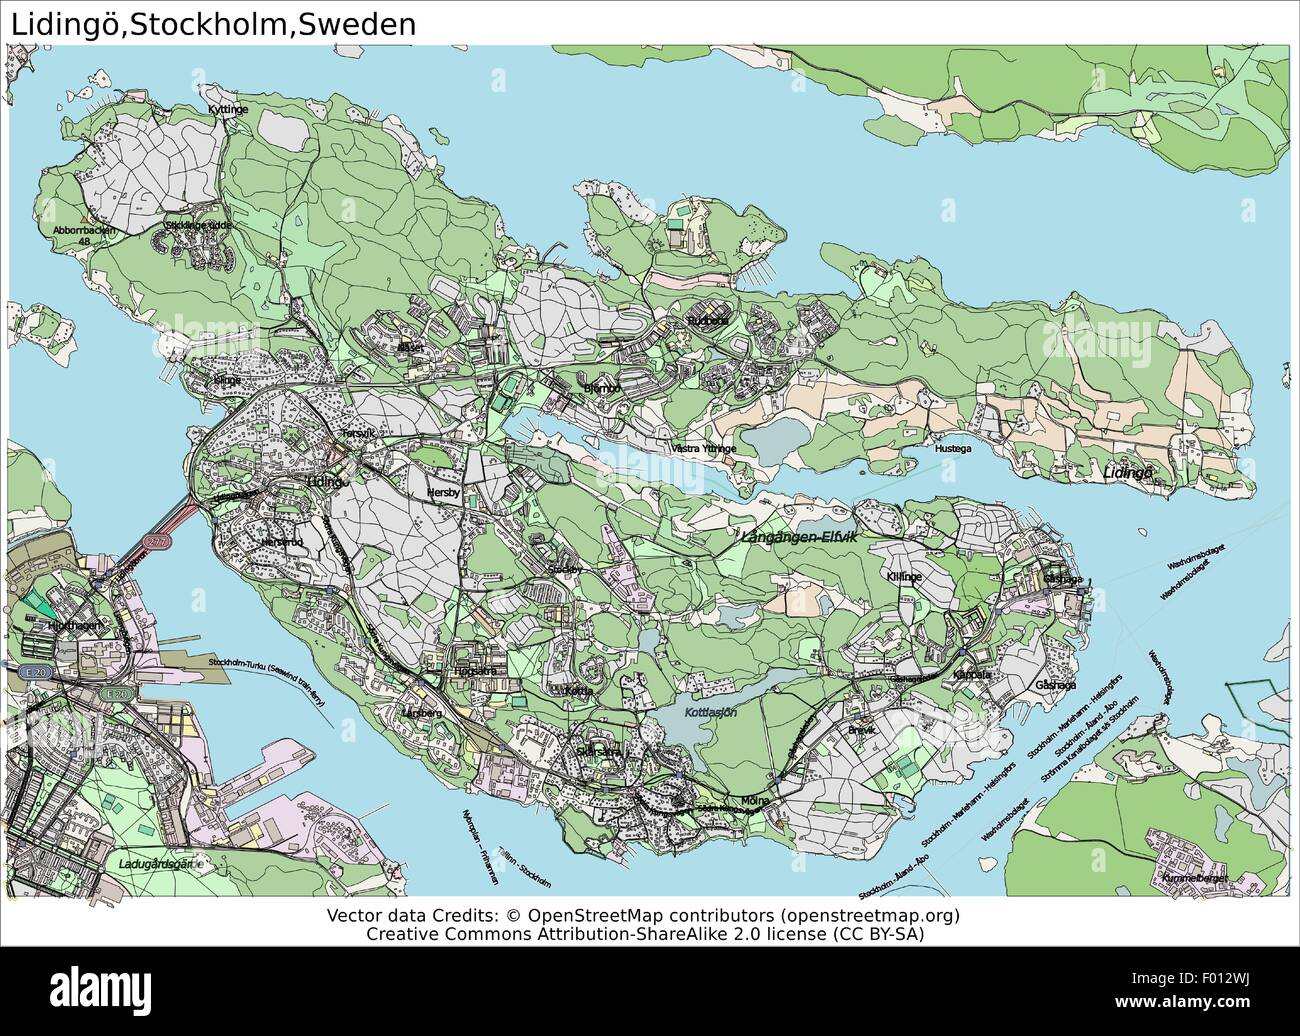 Lidingo Stockholm Sweden Area City Map Aerial View Stock Vector - Sweden map search